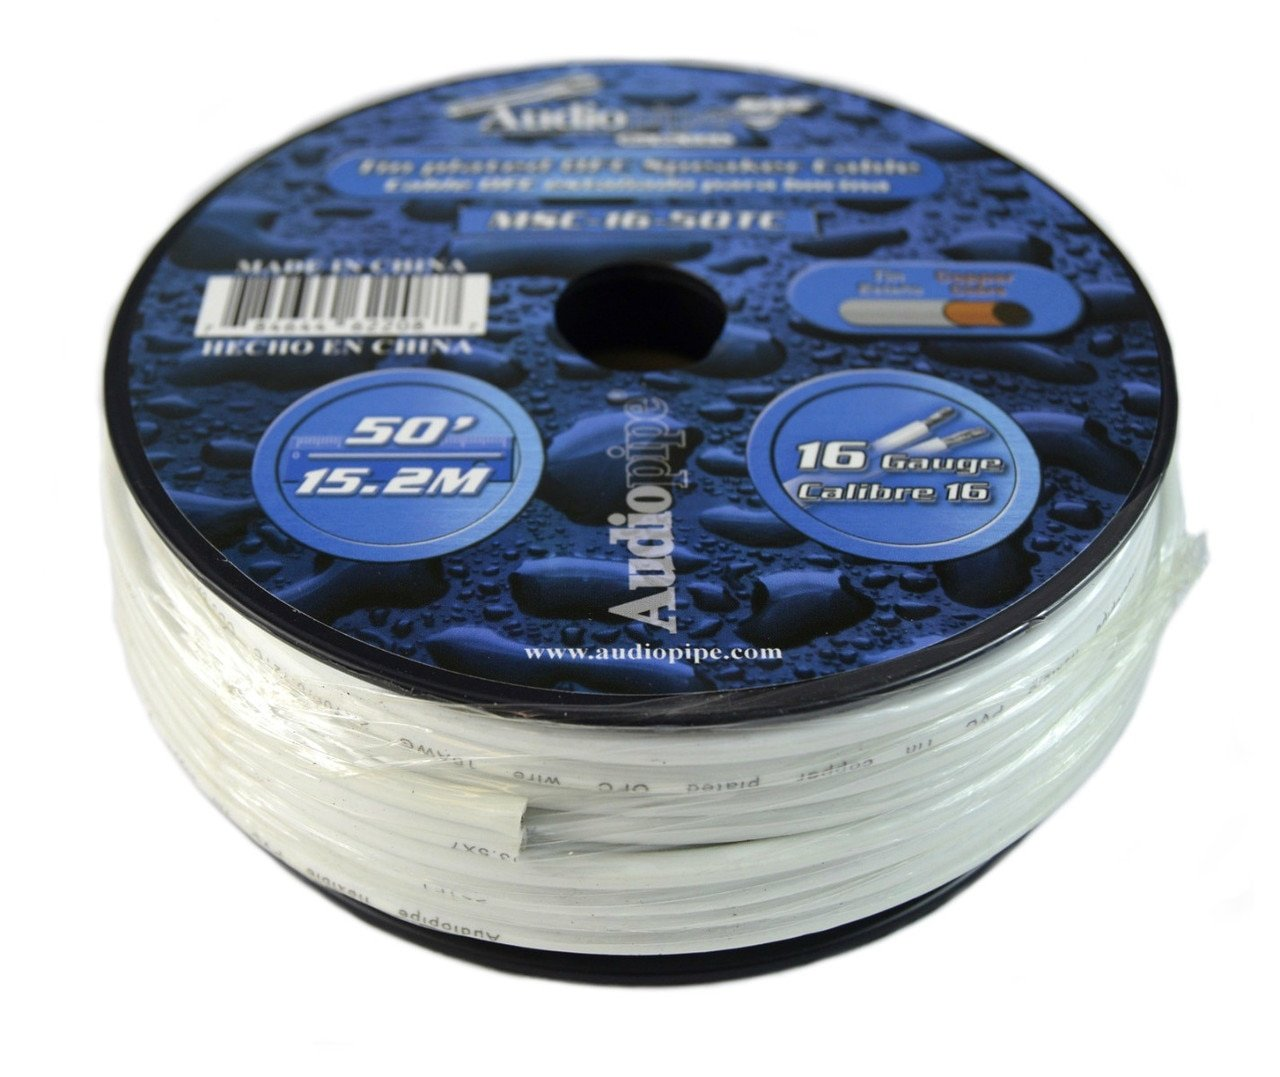 50 Ft Awg 16 Gauge Tin Copper Plated OFC Marine Grade Speaker Audio Cable Wire by Audiopipe